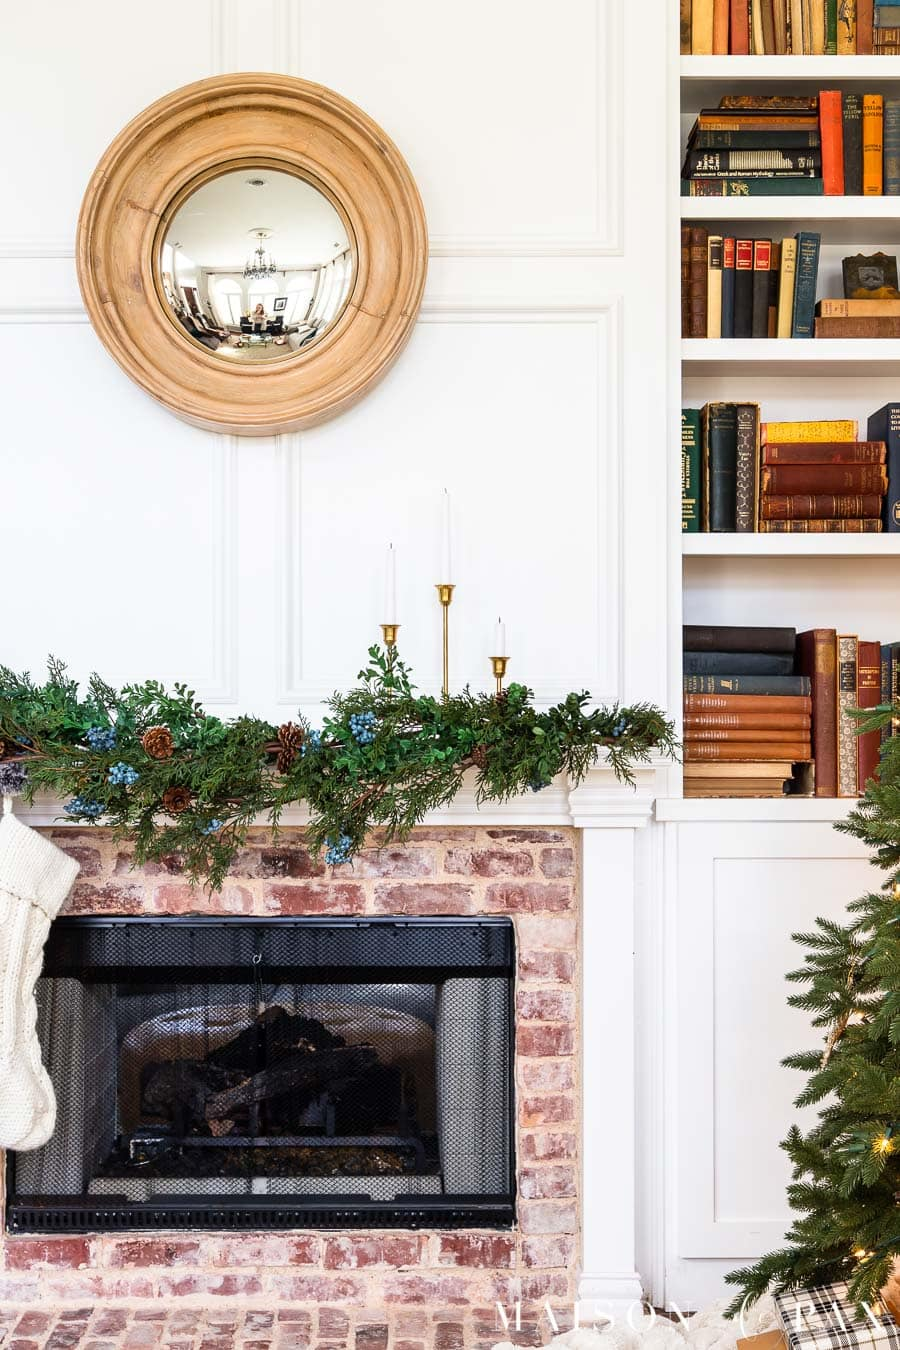 fireplace with garland and stockings